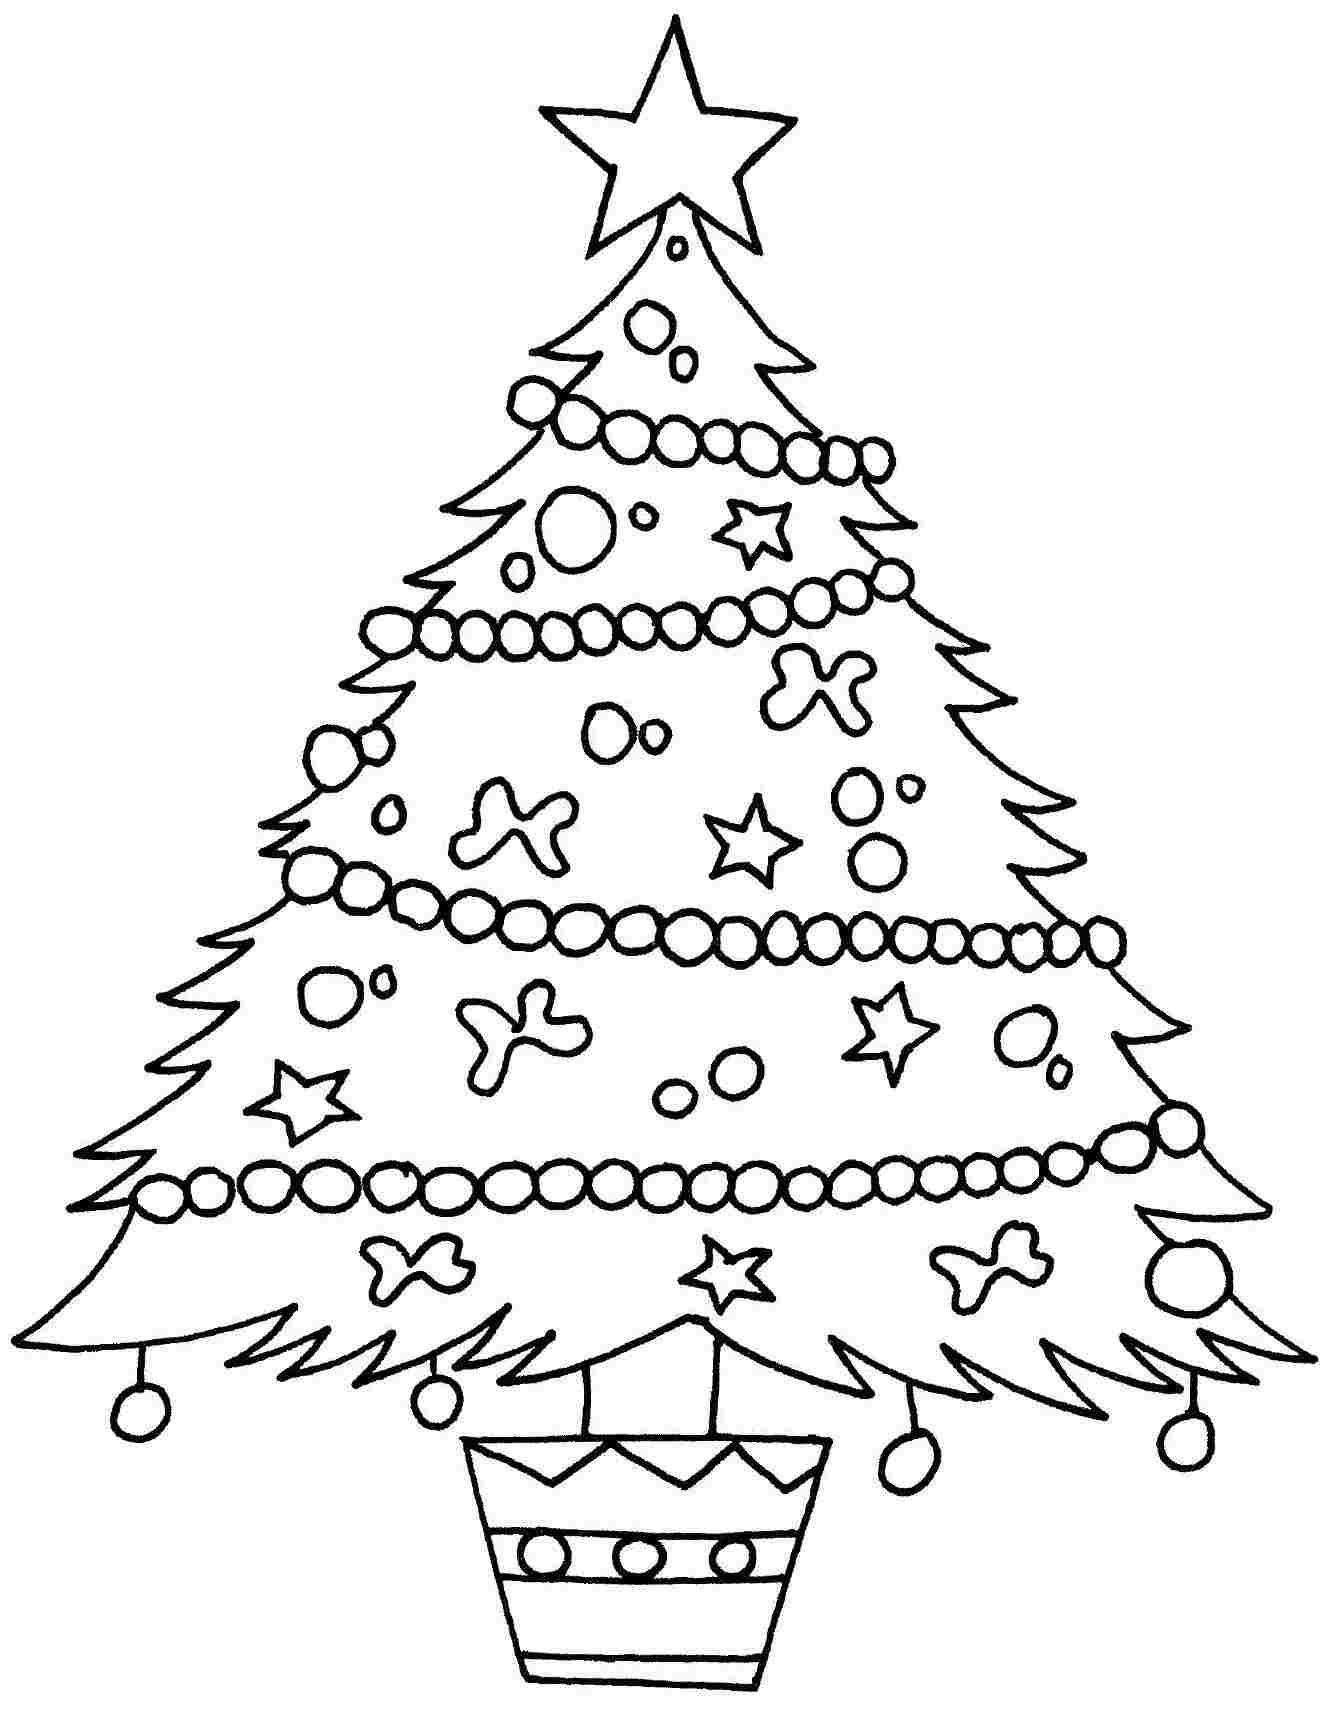 Christmas Tree Coloring Page Template #1 | Work stuff | Pinterest ...